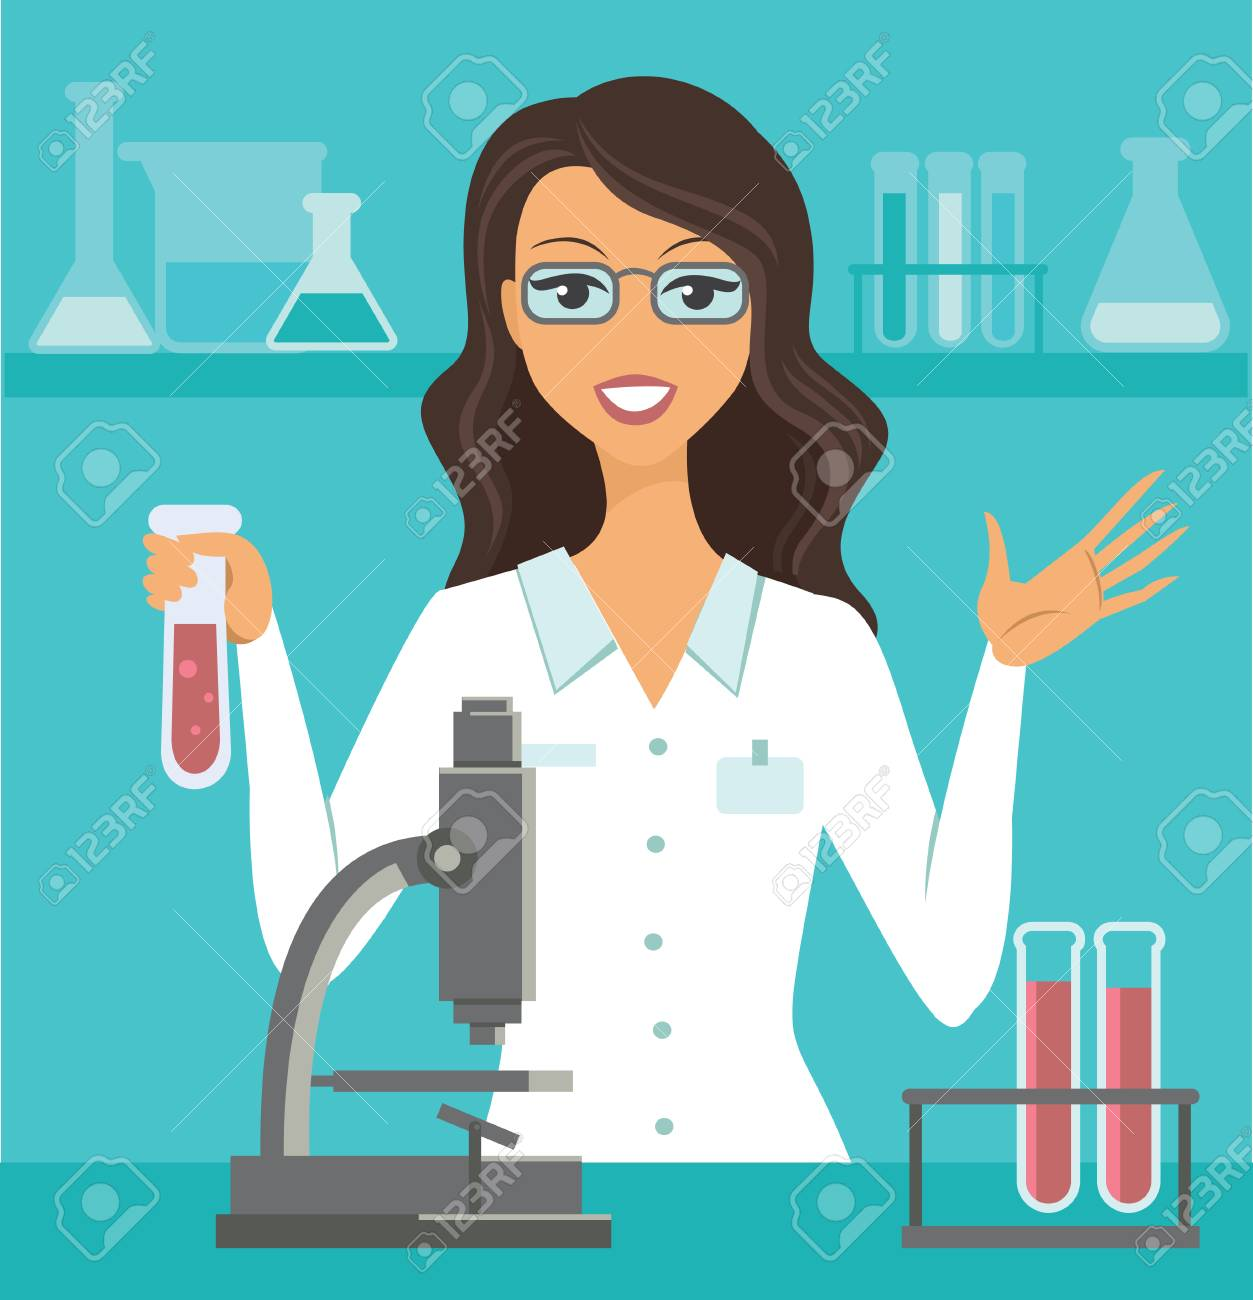 flat vector illustration of scientist working at science lab - 113540334